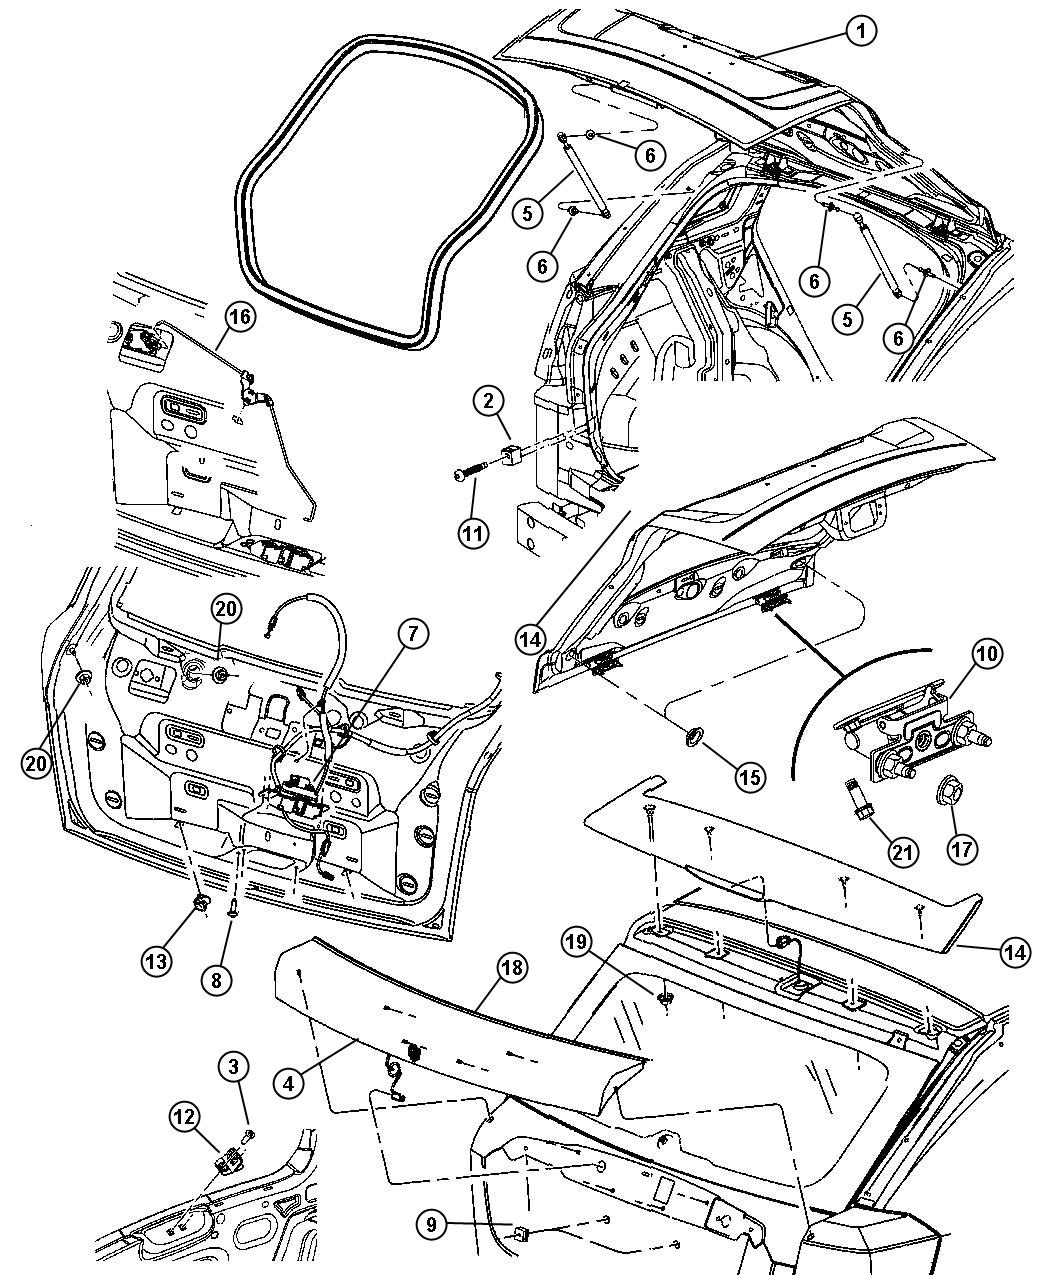 Wiring Diagram  31 2007 Dodge Caliber Parts Diagram